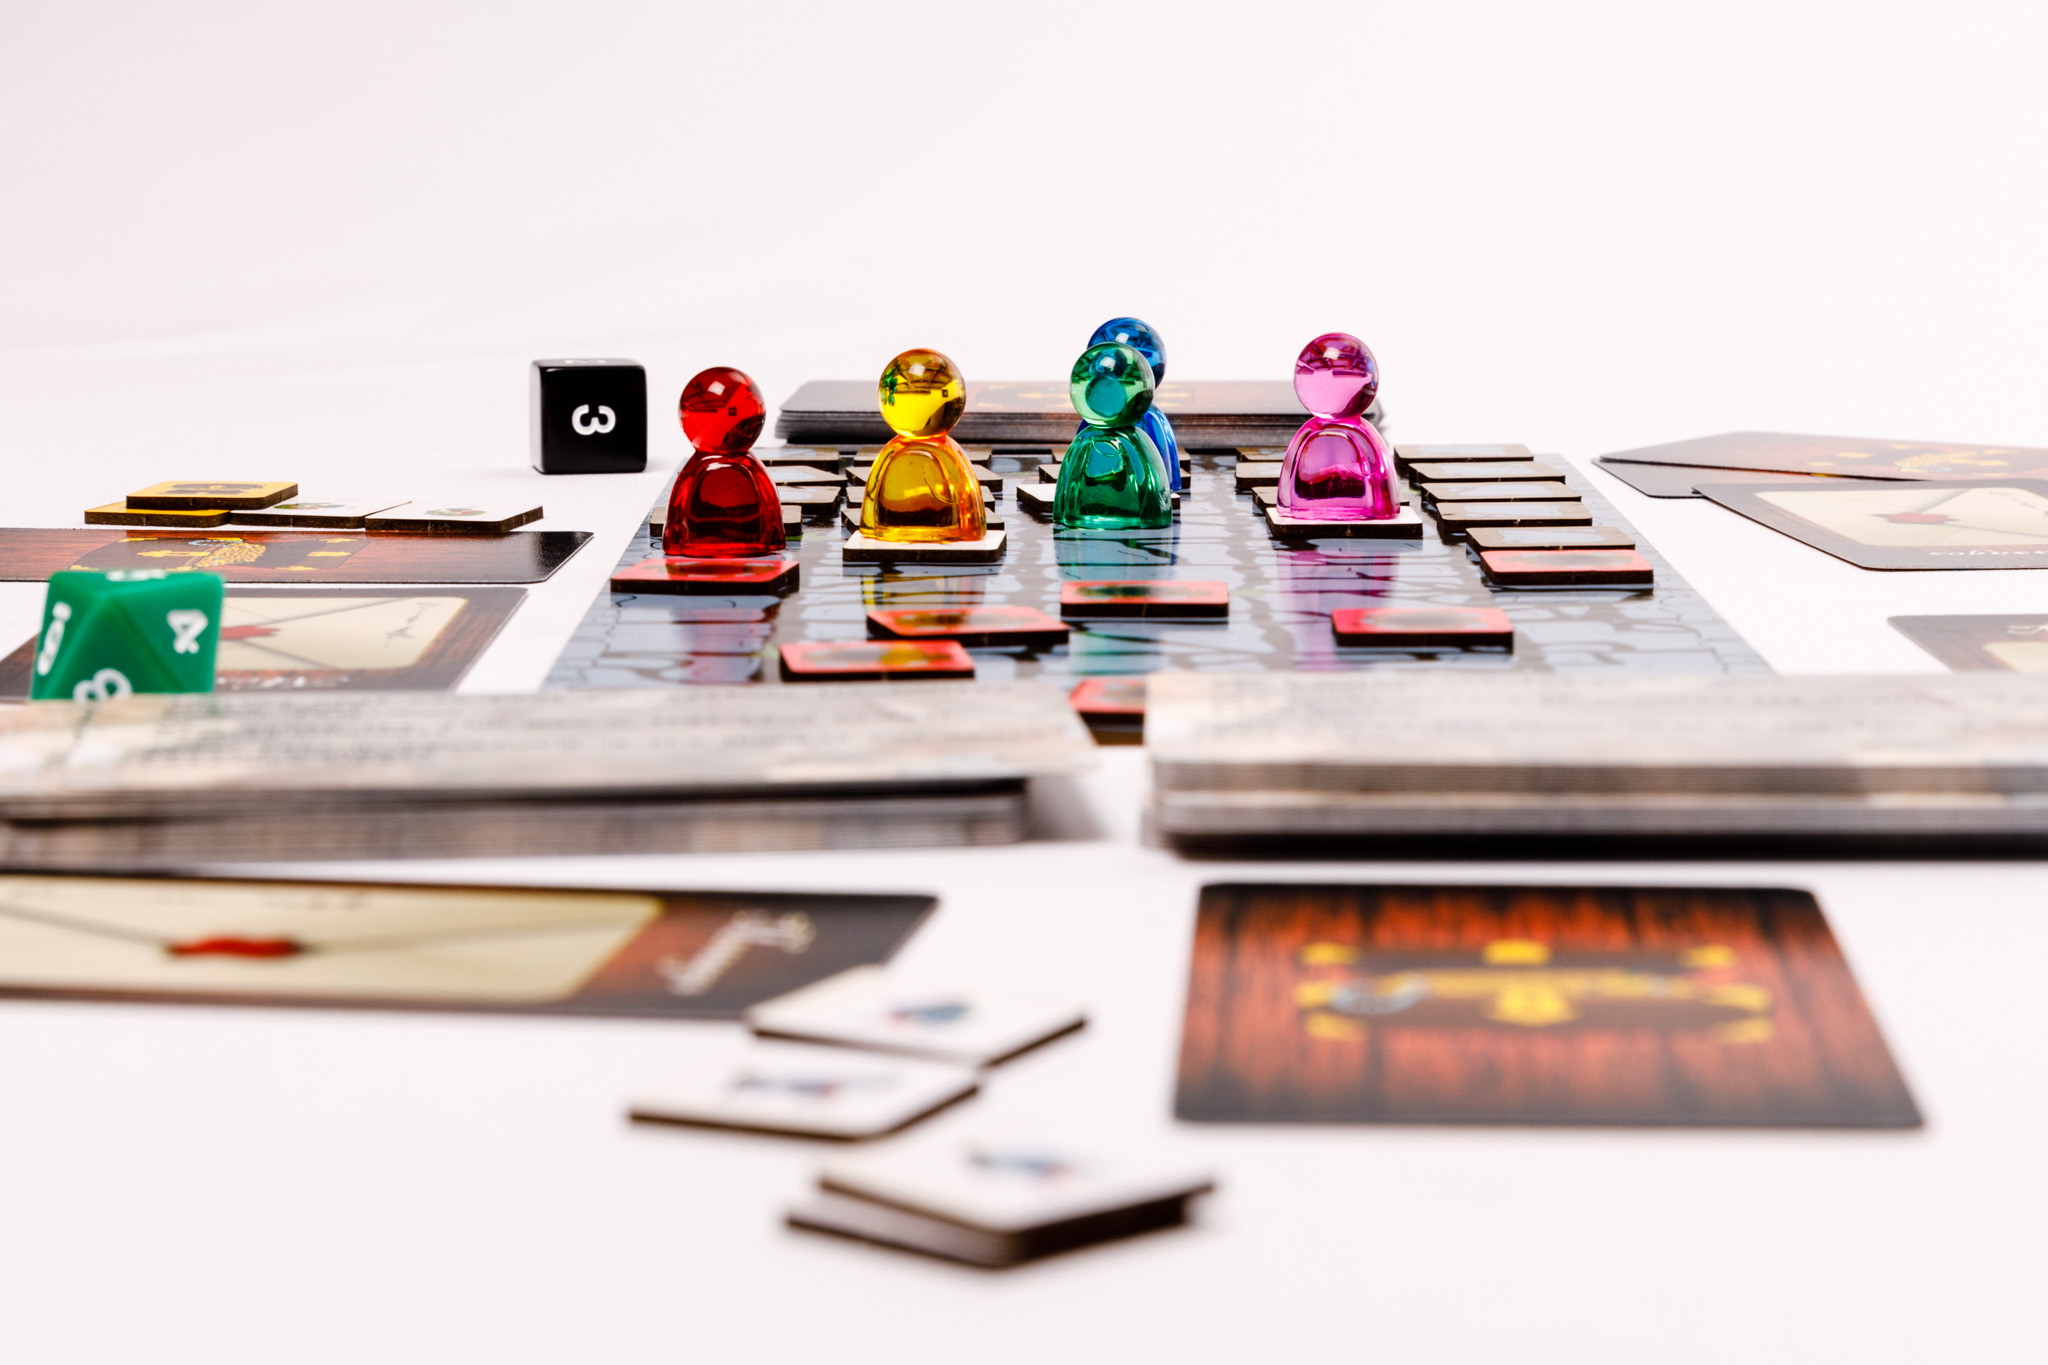 Troll Bridge Board Game By Cravon Studios